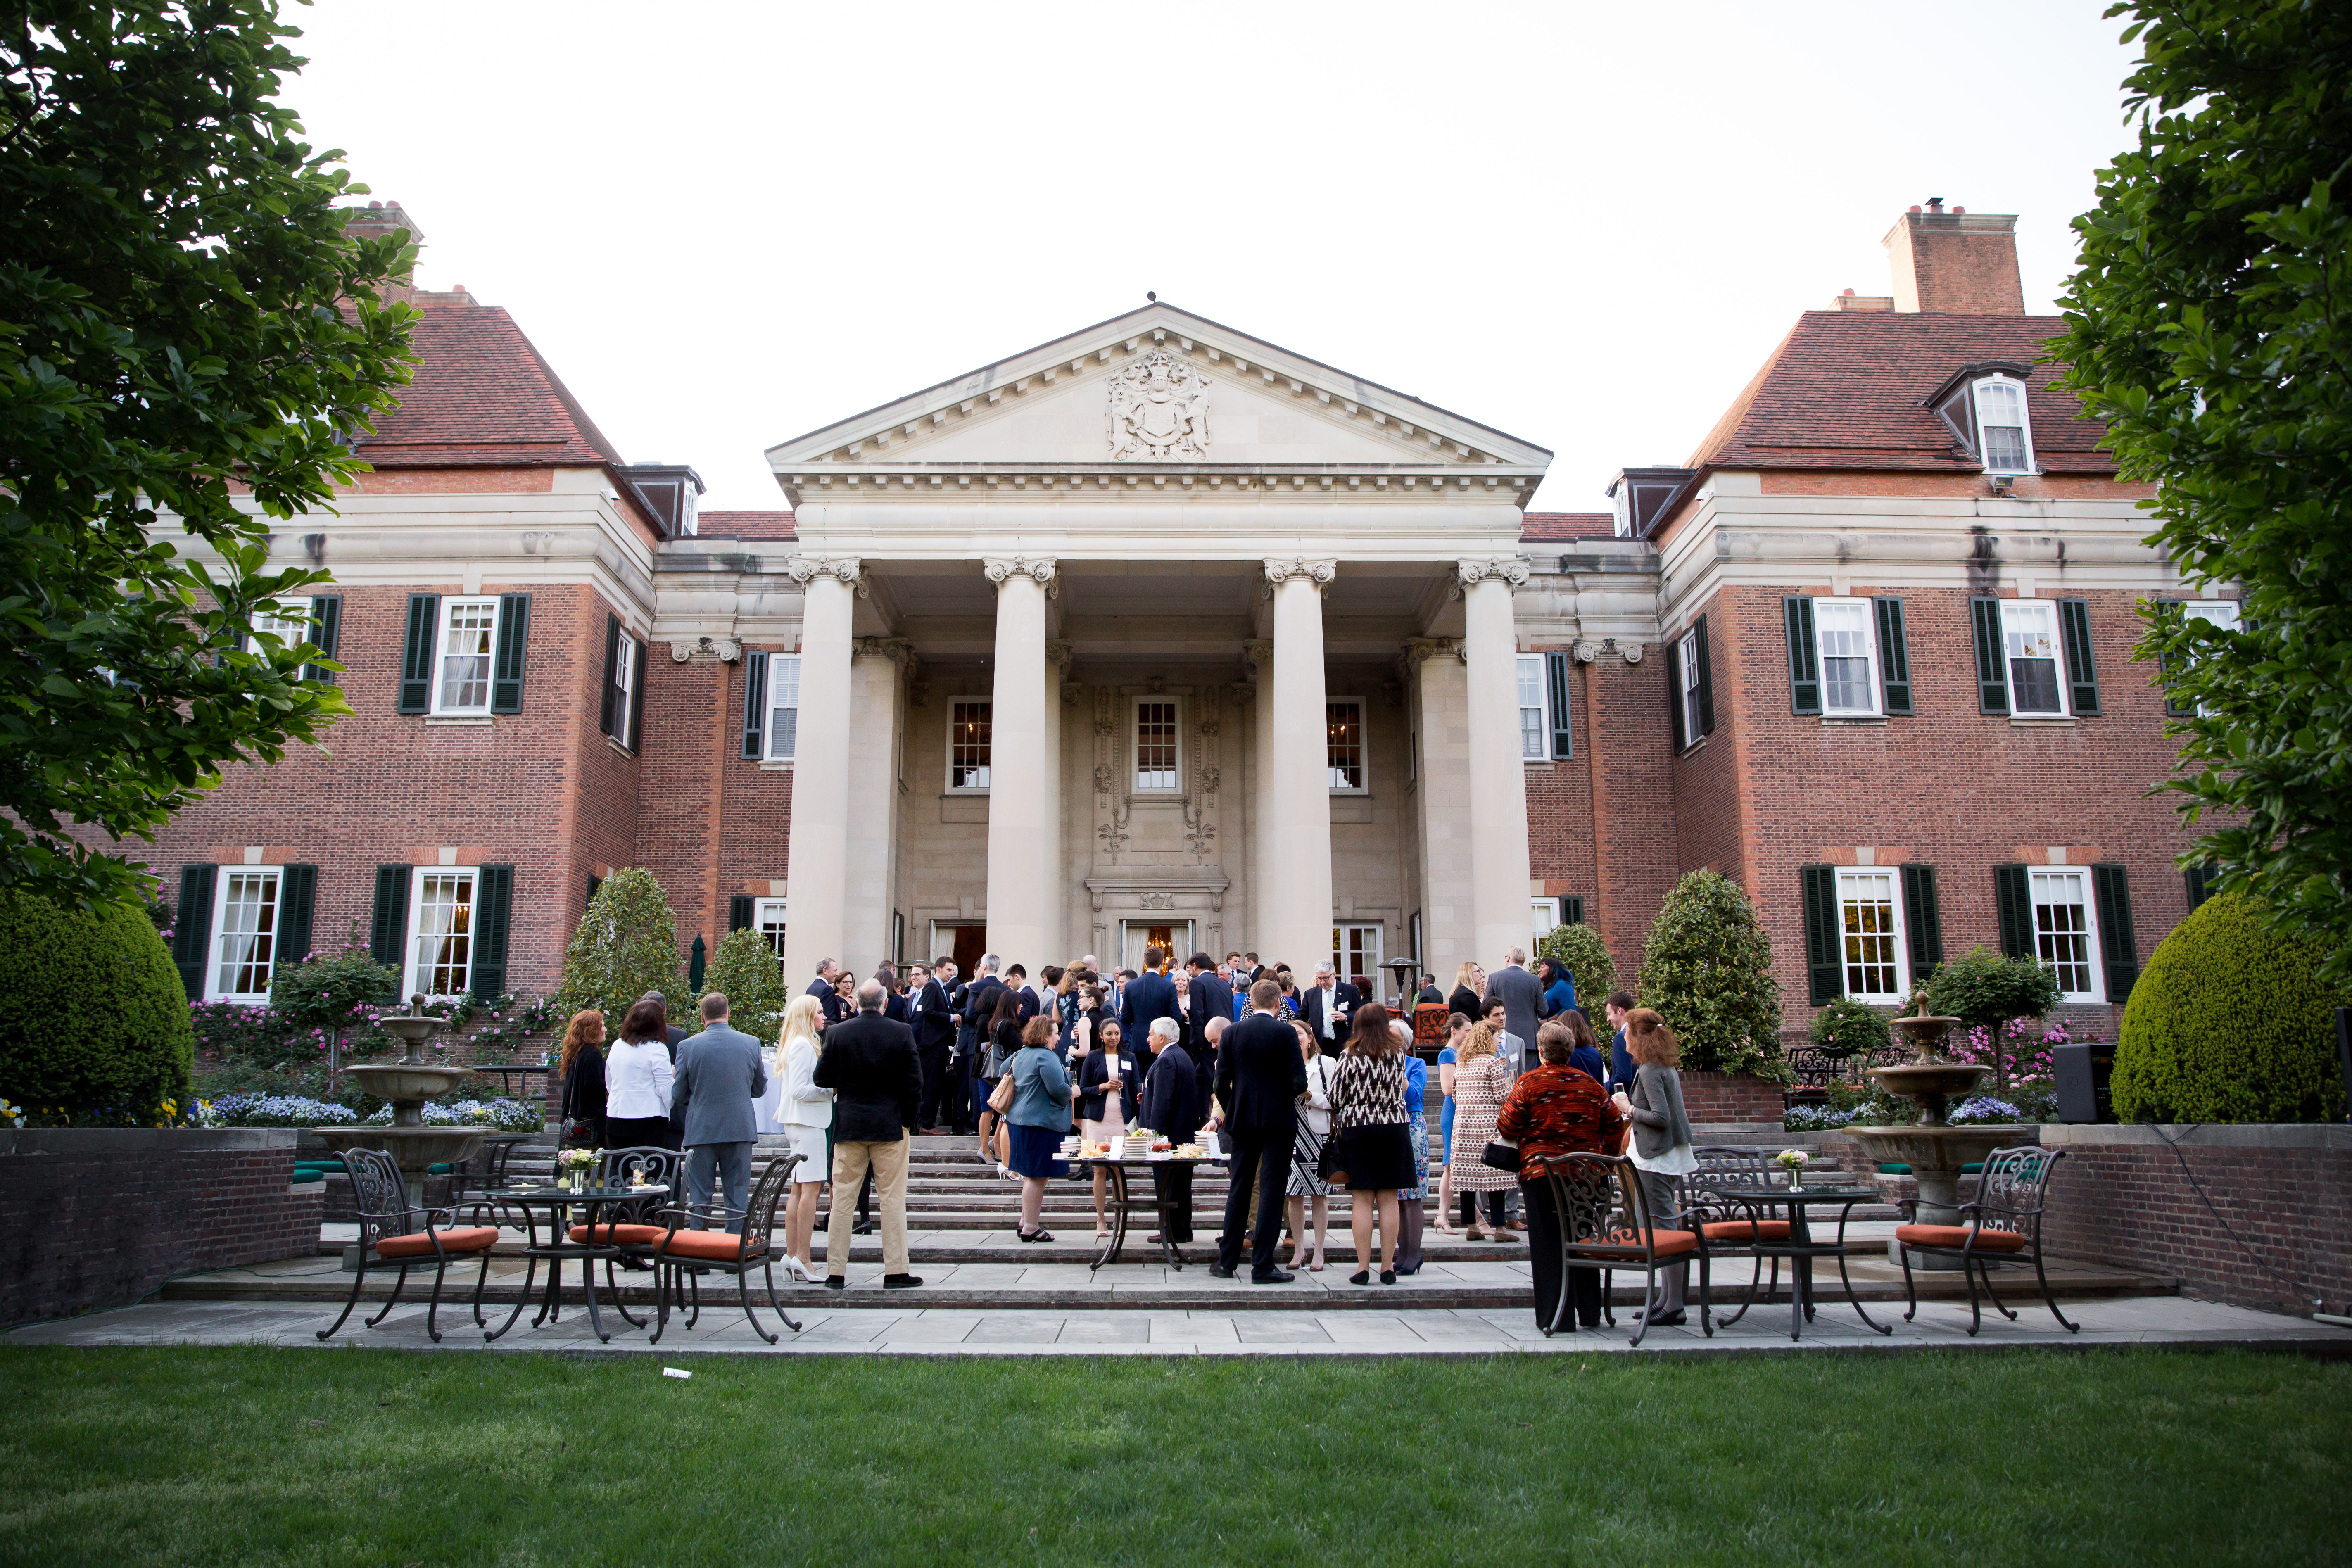 The British Ambassador to the US hosted a reception in celebration of the US-UK Fulbright Commission's 70th anniversary at his official residence in in Washington, DC